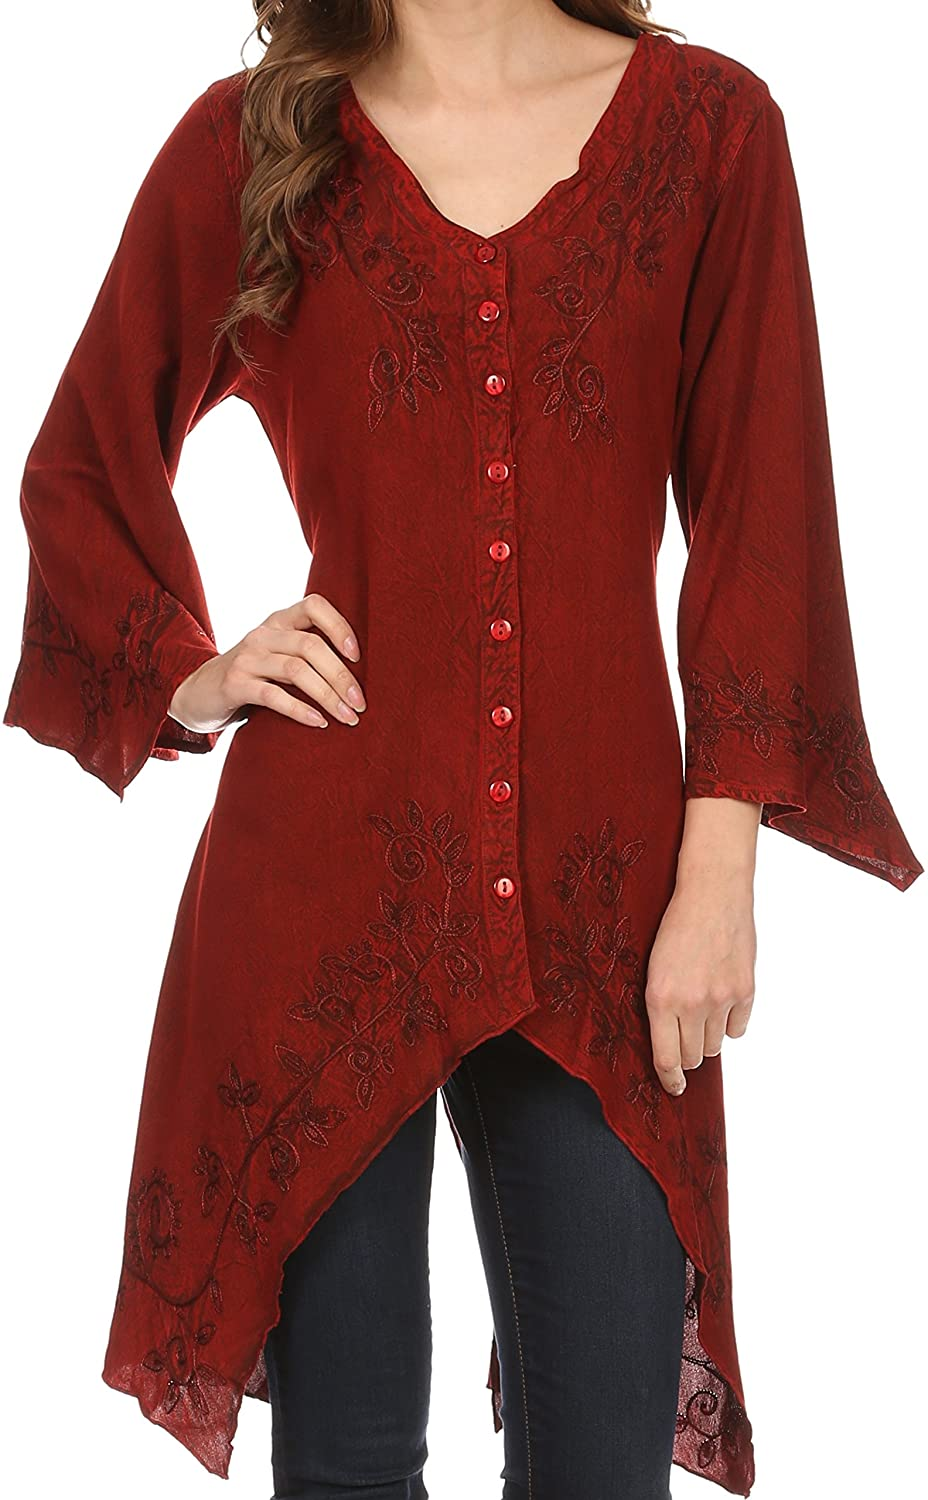 Sakkas Gella Button Down Blouse Top With Bell Sleeves And Handkerchief Sides